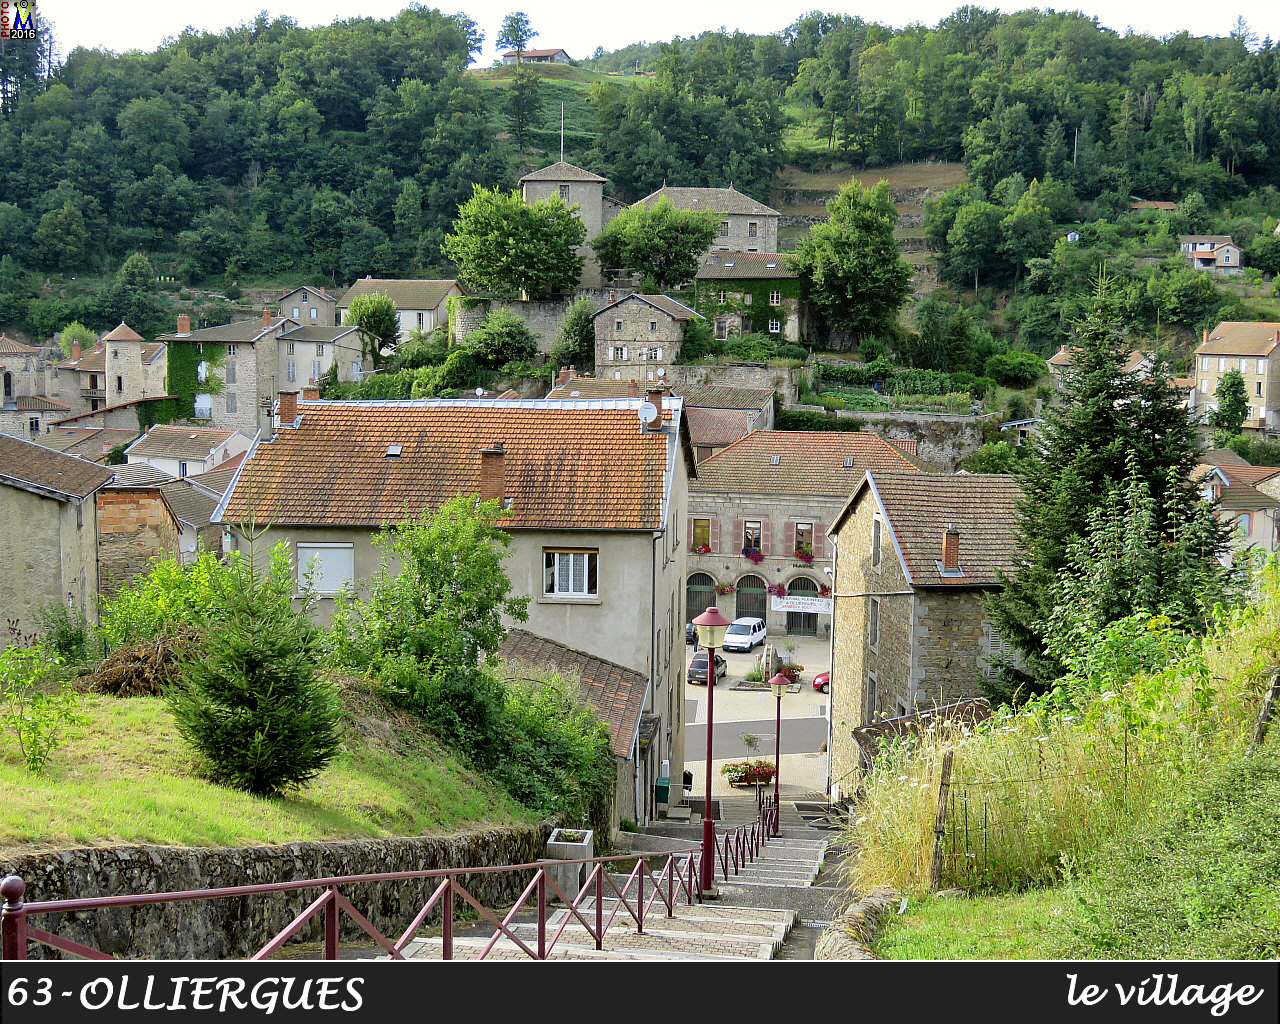 63OLLIERGUES_village_118.jpg